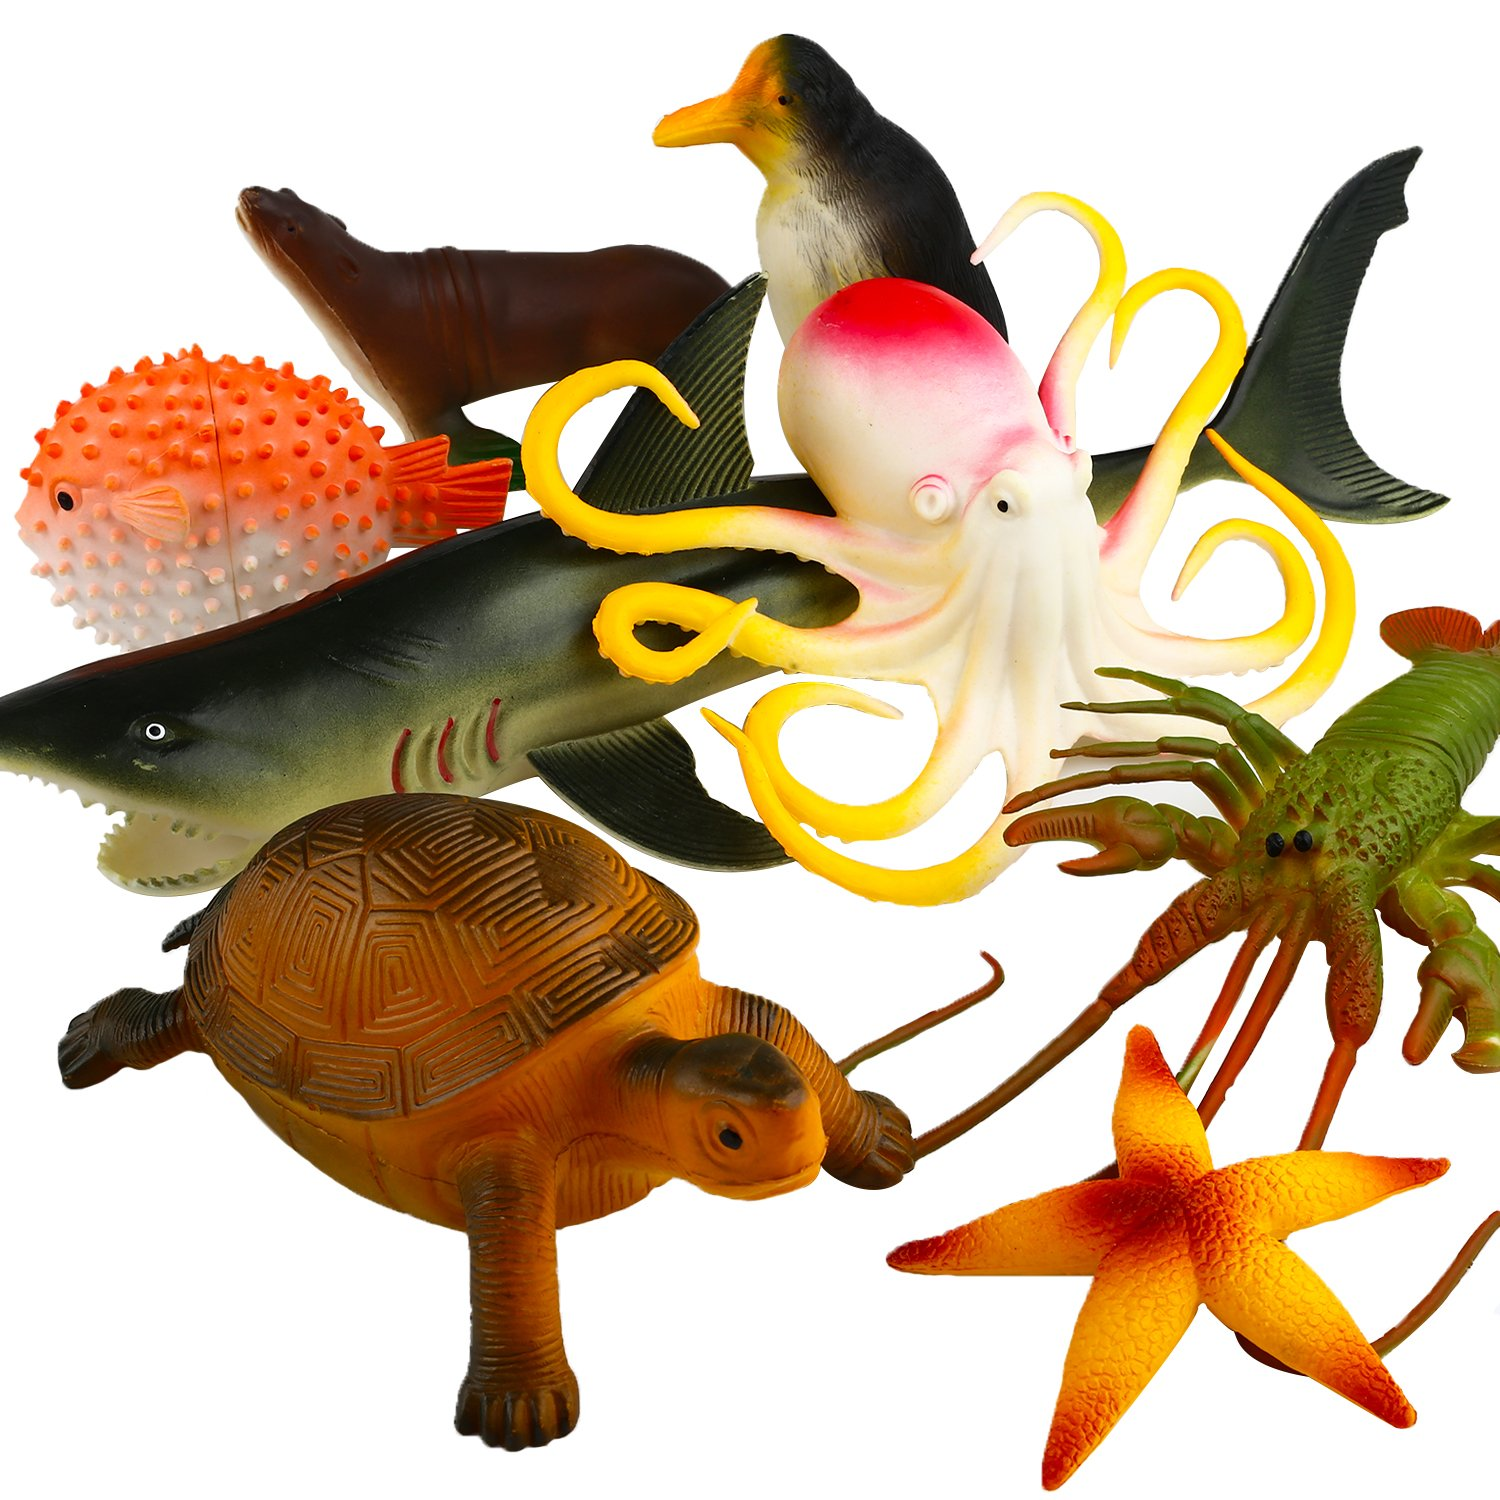 Octopus Shark Turtle 4-14 Inch Large Vinyl Plastic Animal Toy Set Funcorn Toys Realistic Under The Sea Life Figure Bath Toy for Child Toddler Educational Party Favors 8 Pack Ocean Sea Animal